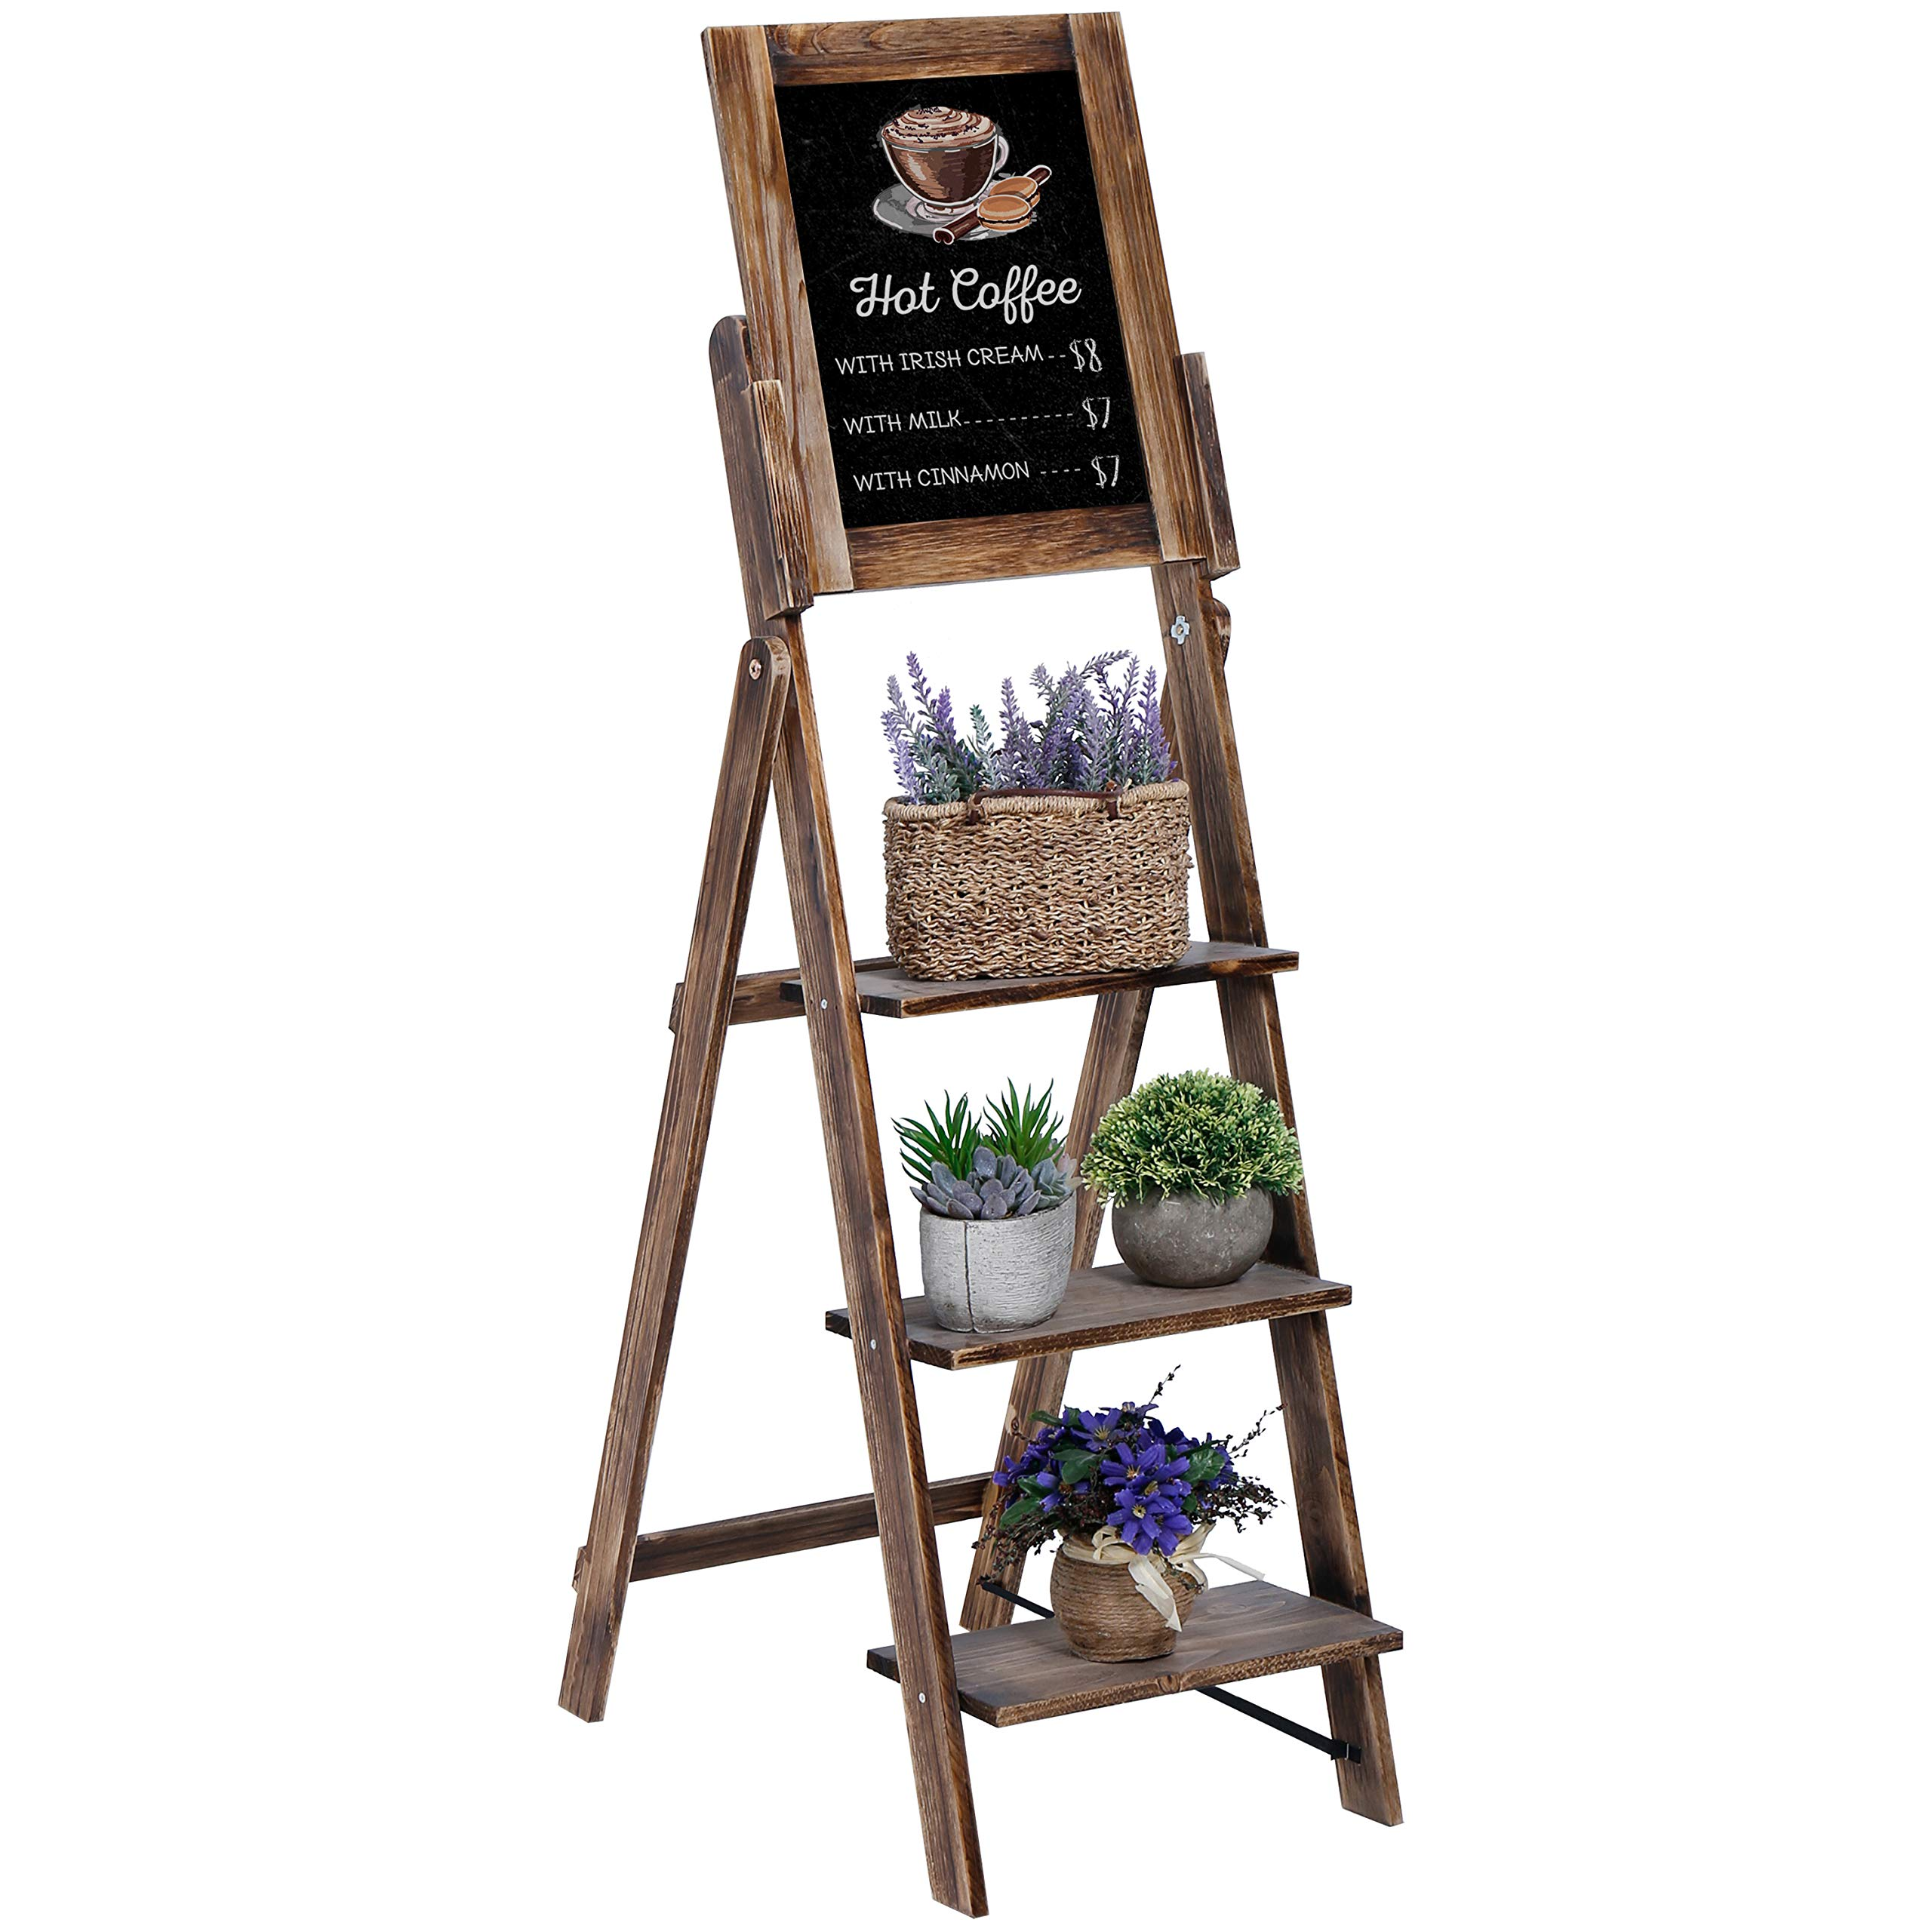 MyGift 3-Tier Torched Wood Chalkboard Easel with Display Shelves